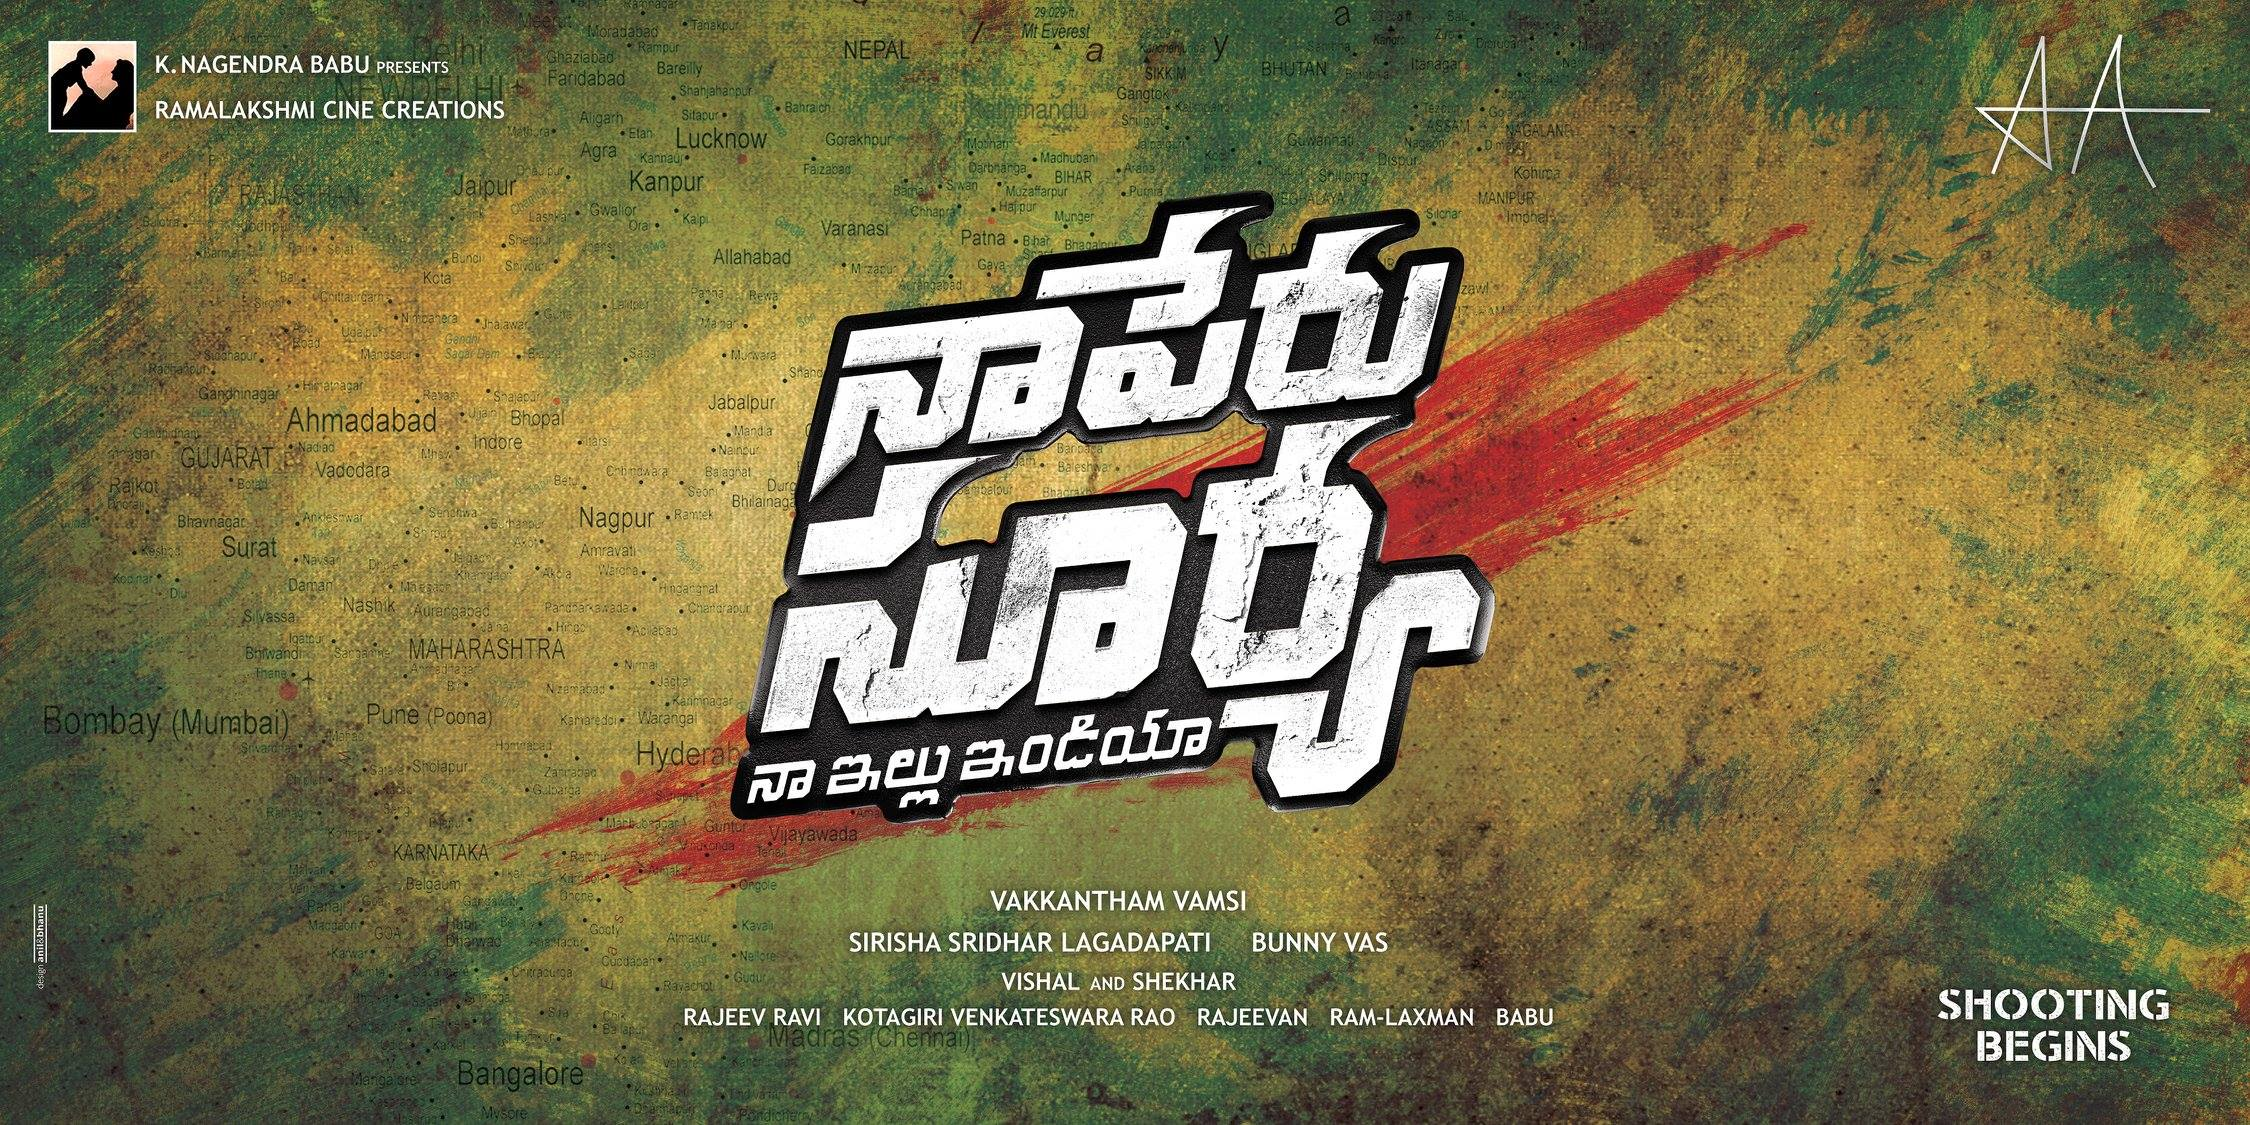 Telugu movies releasing in 2018 that are highly anticipated by the